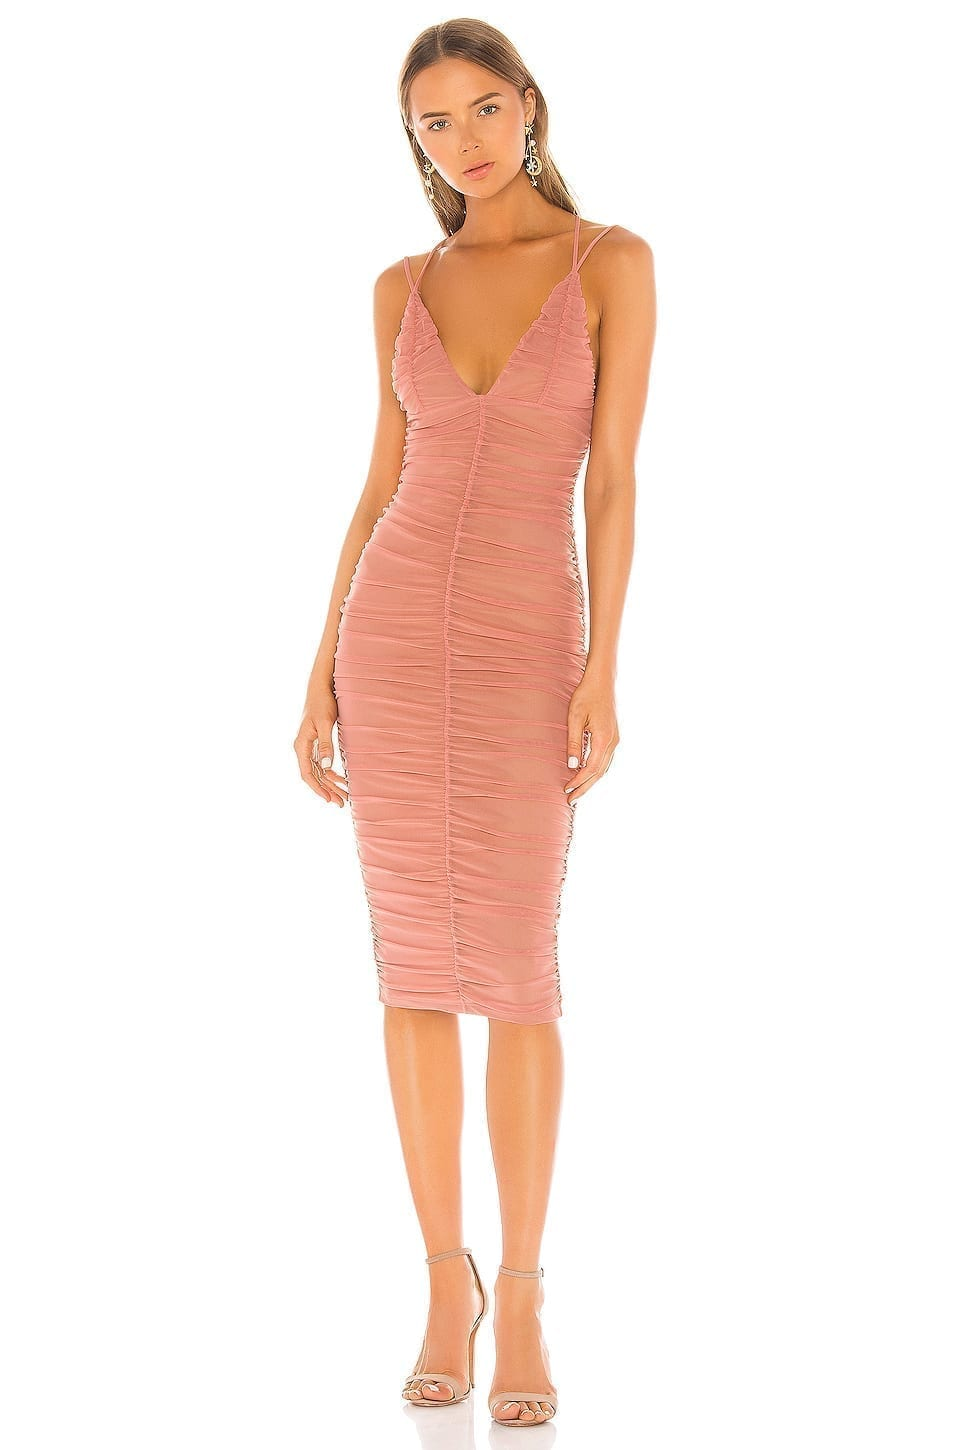 MICHAEL COSTELLO x REVOLVE Fiji Midi Dress